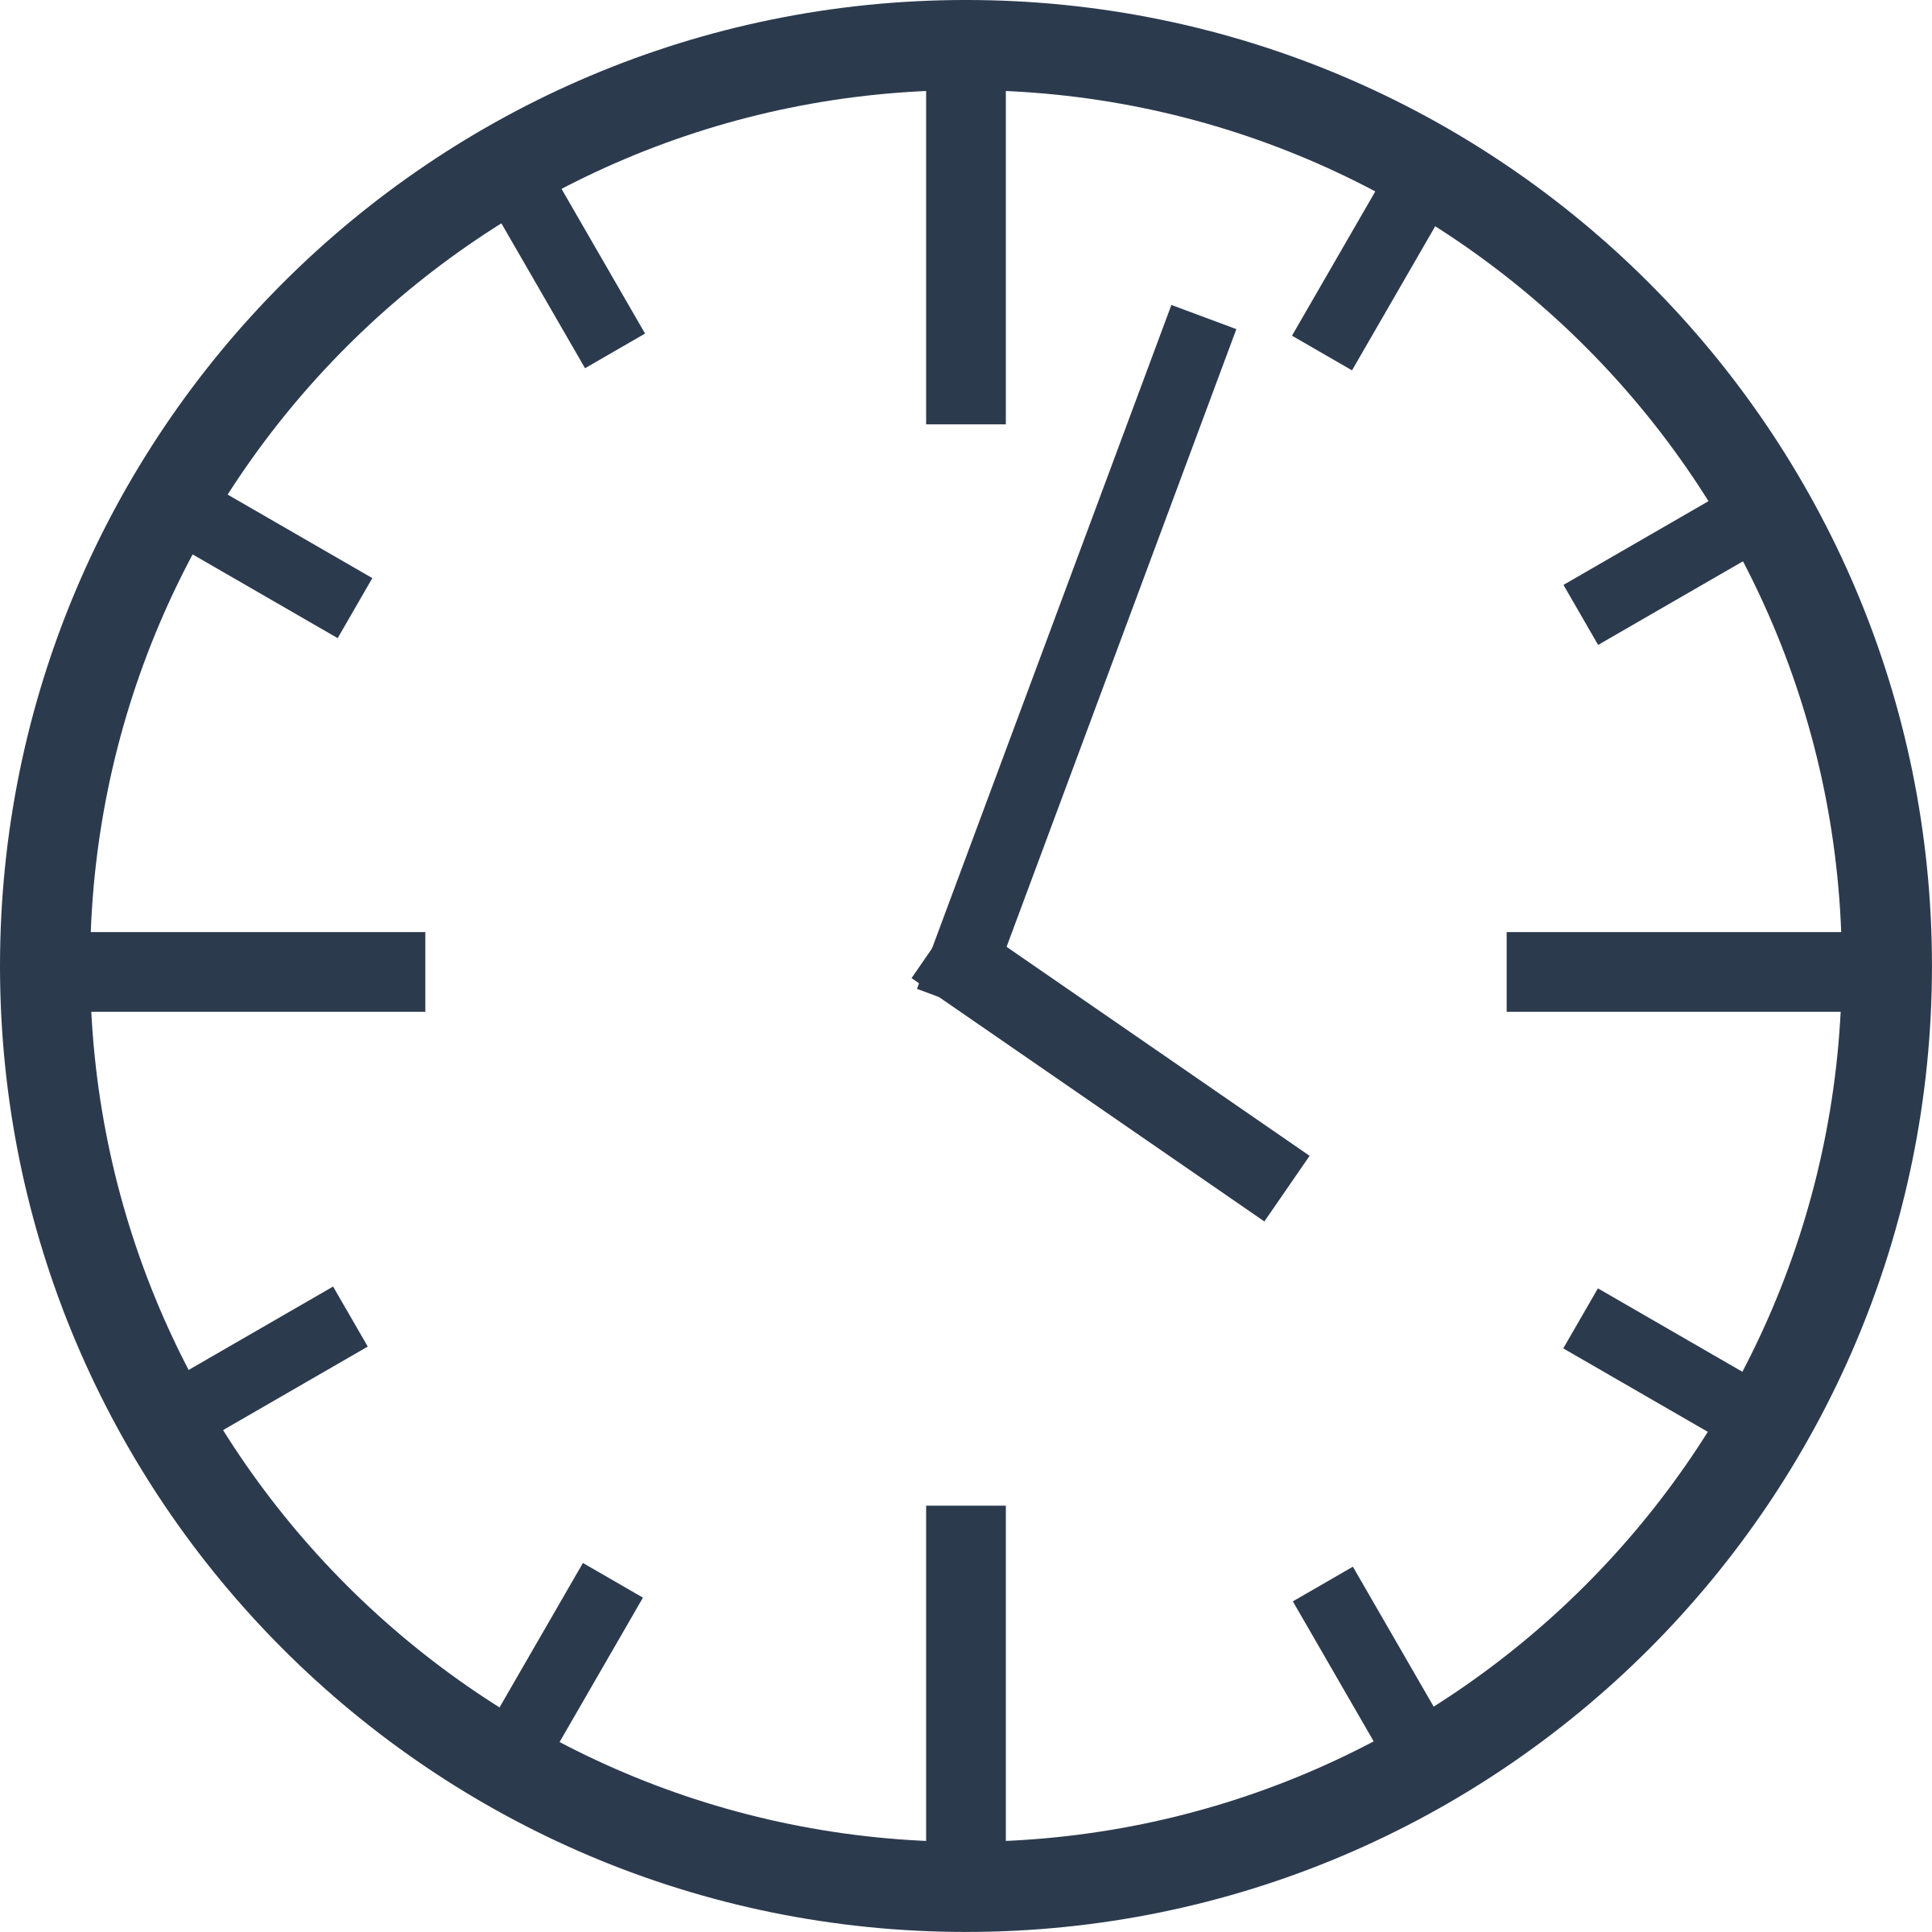 watch clipart at getdrawings com free for personal use watch rh getdrawings com watch clipart png watch clipart black and white